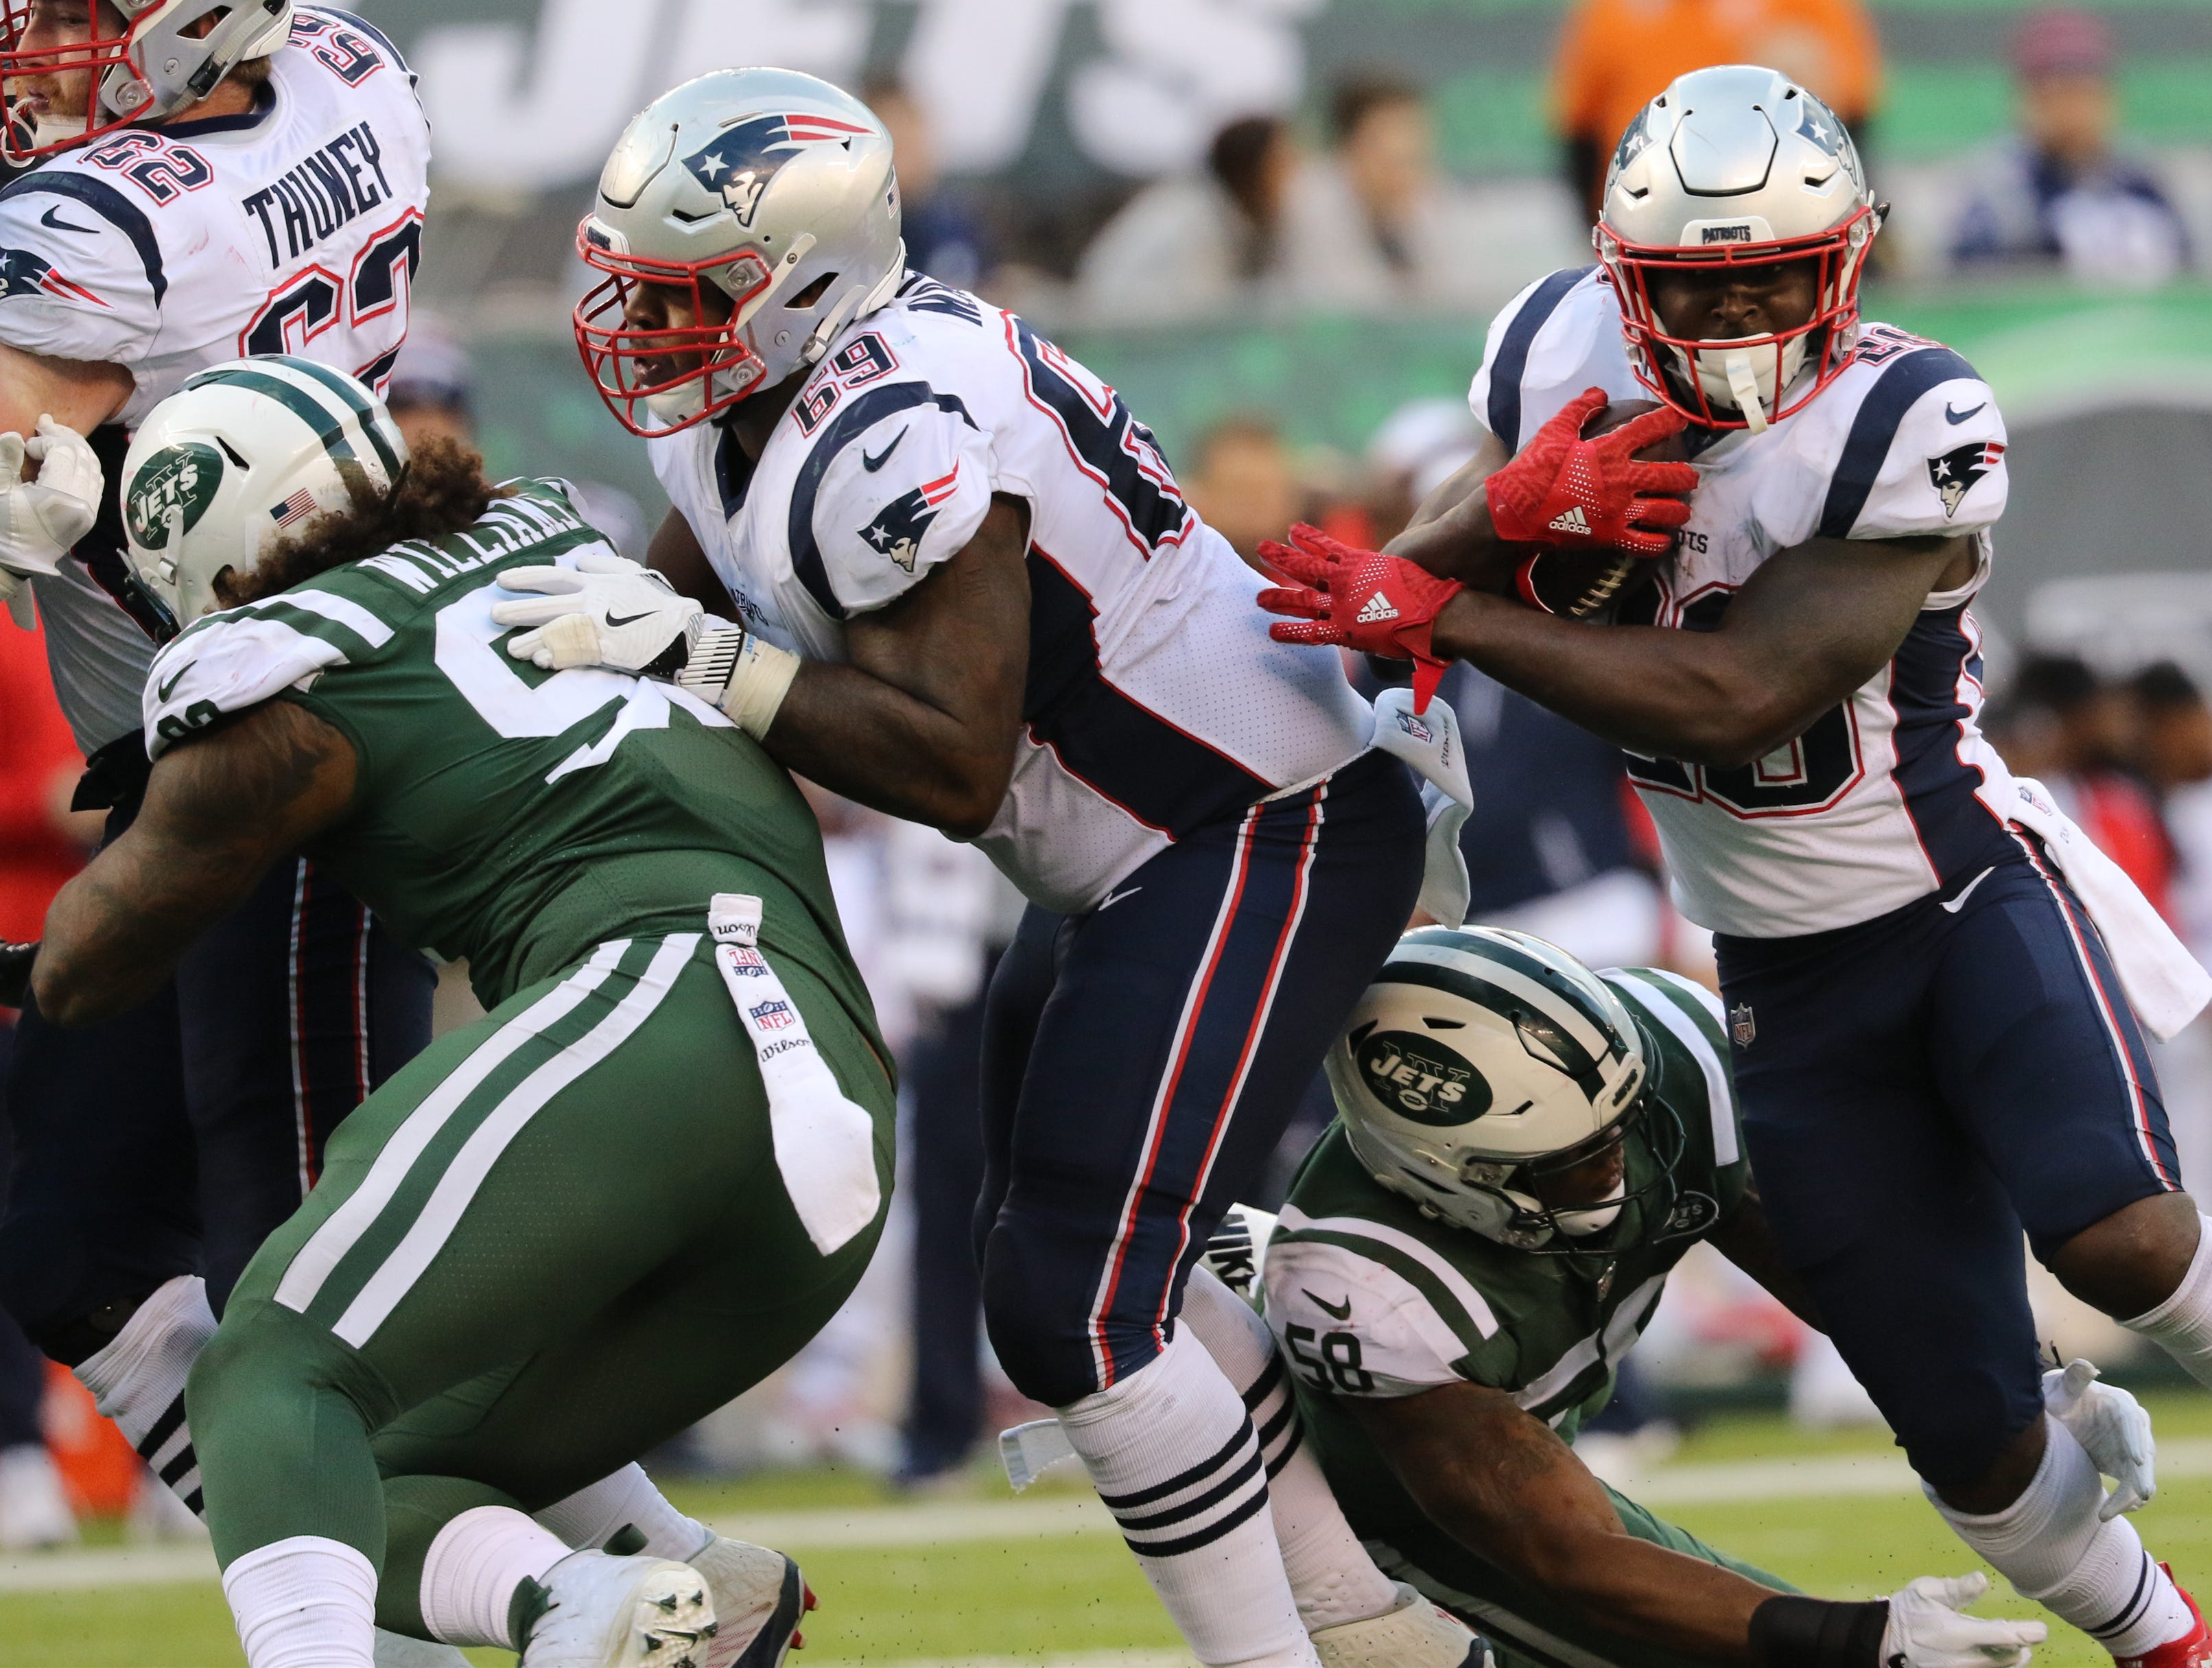 James White runs the ball for the Patriots as he tries to break a tackle attempt by Darron Lee, of the Jets, during the second half. Sunday, November 25, 2018